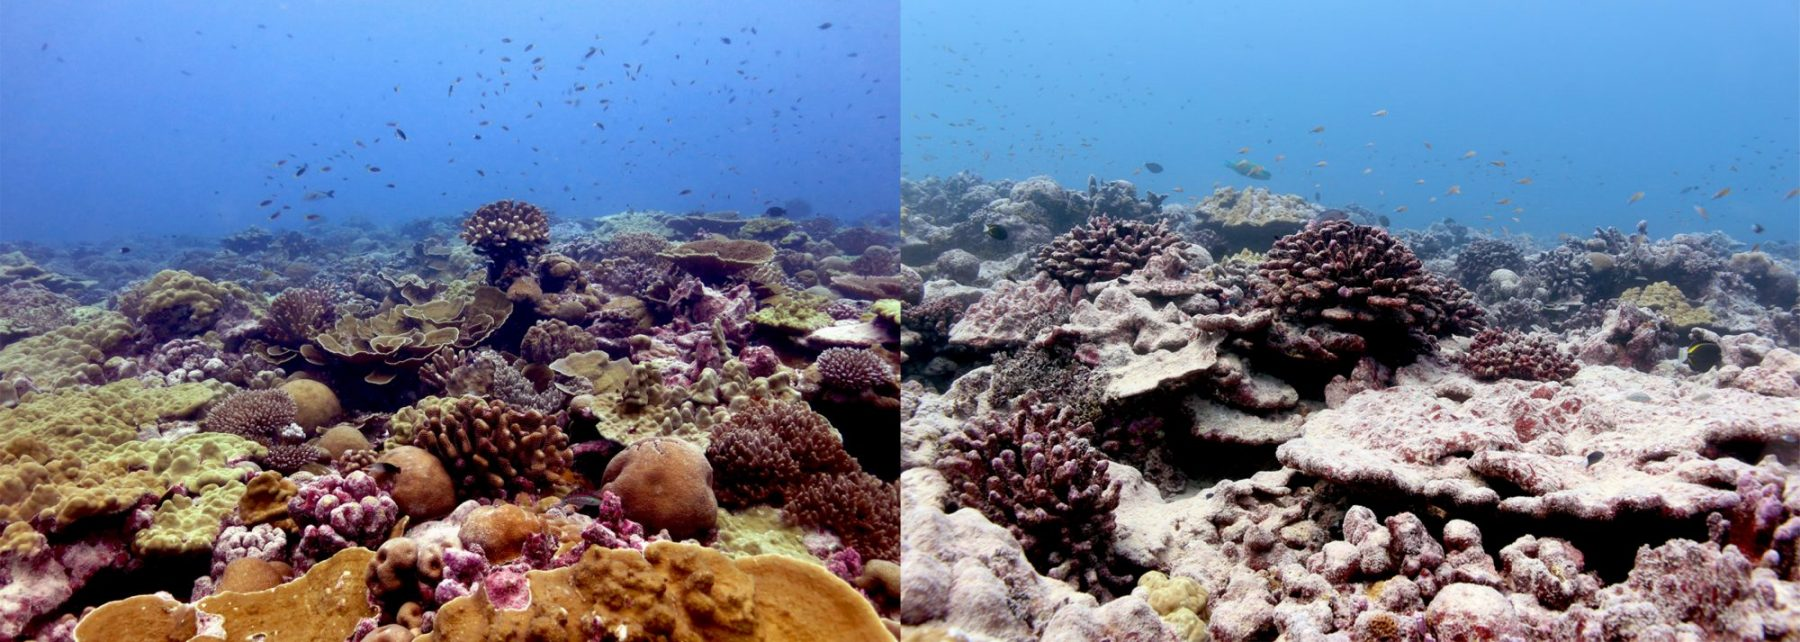 A coral reef site on Kiritimati before and after the 2015-16 marine heatwave